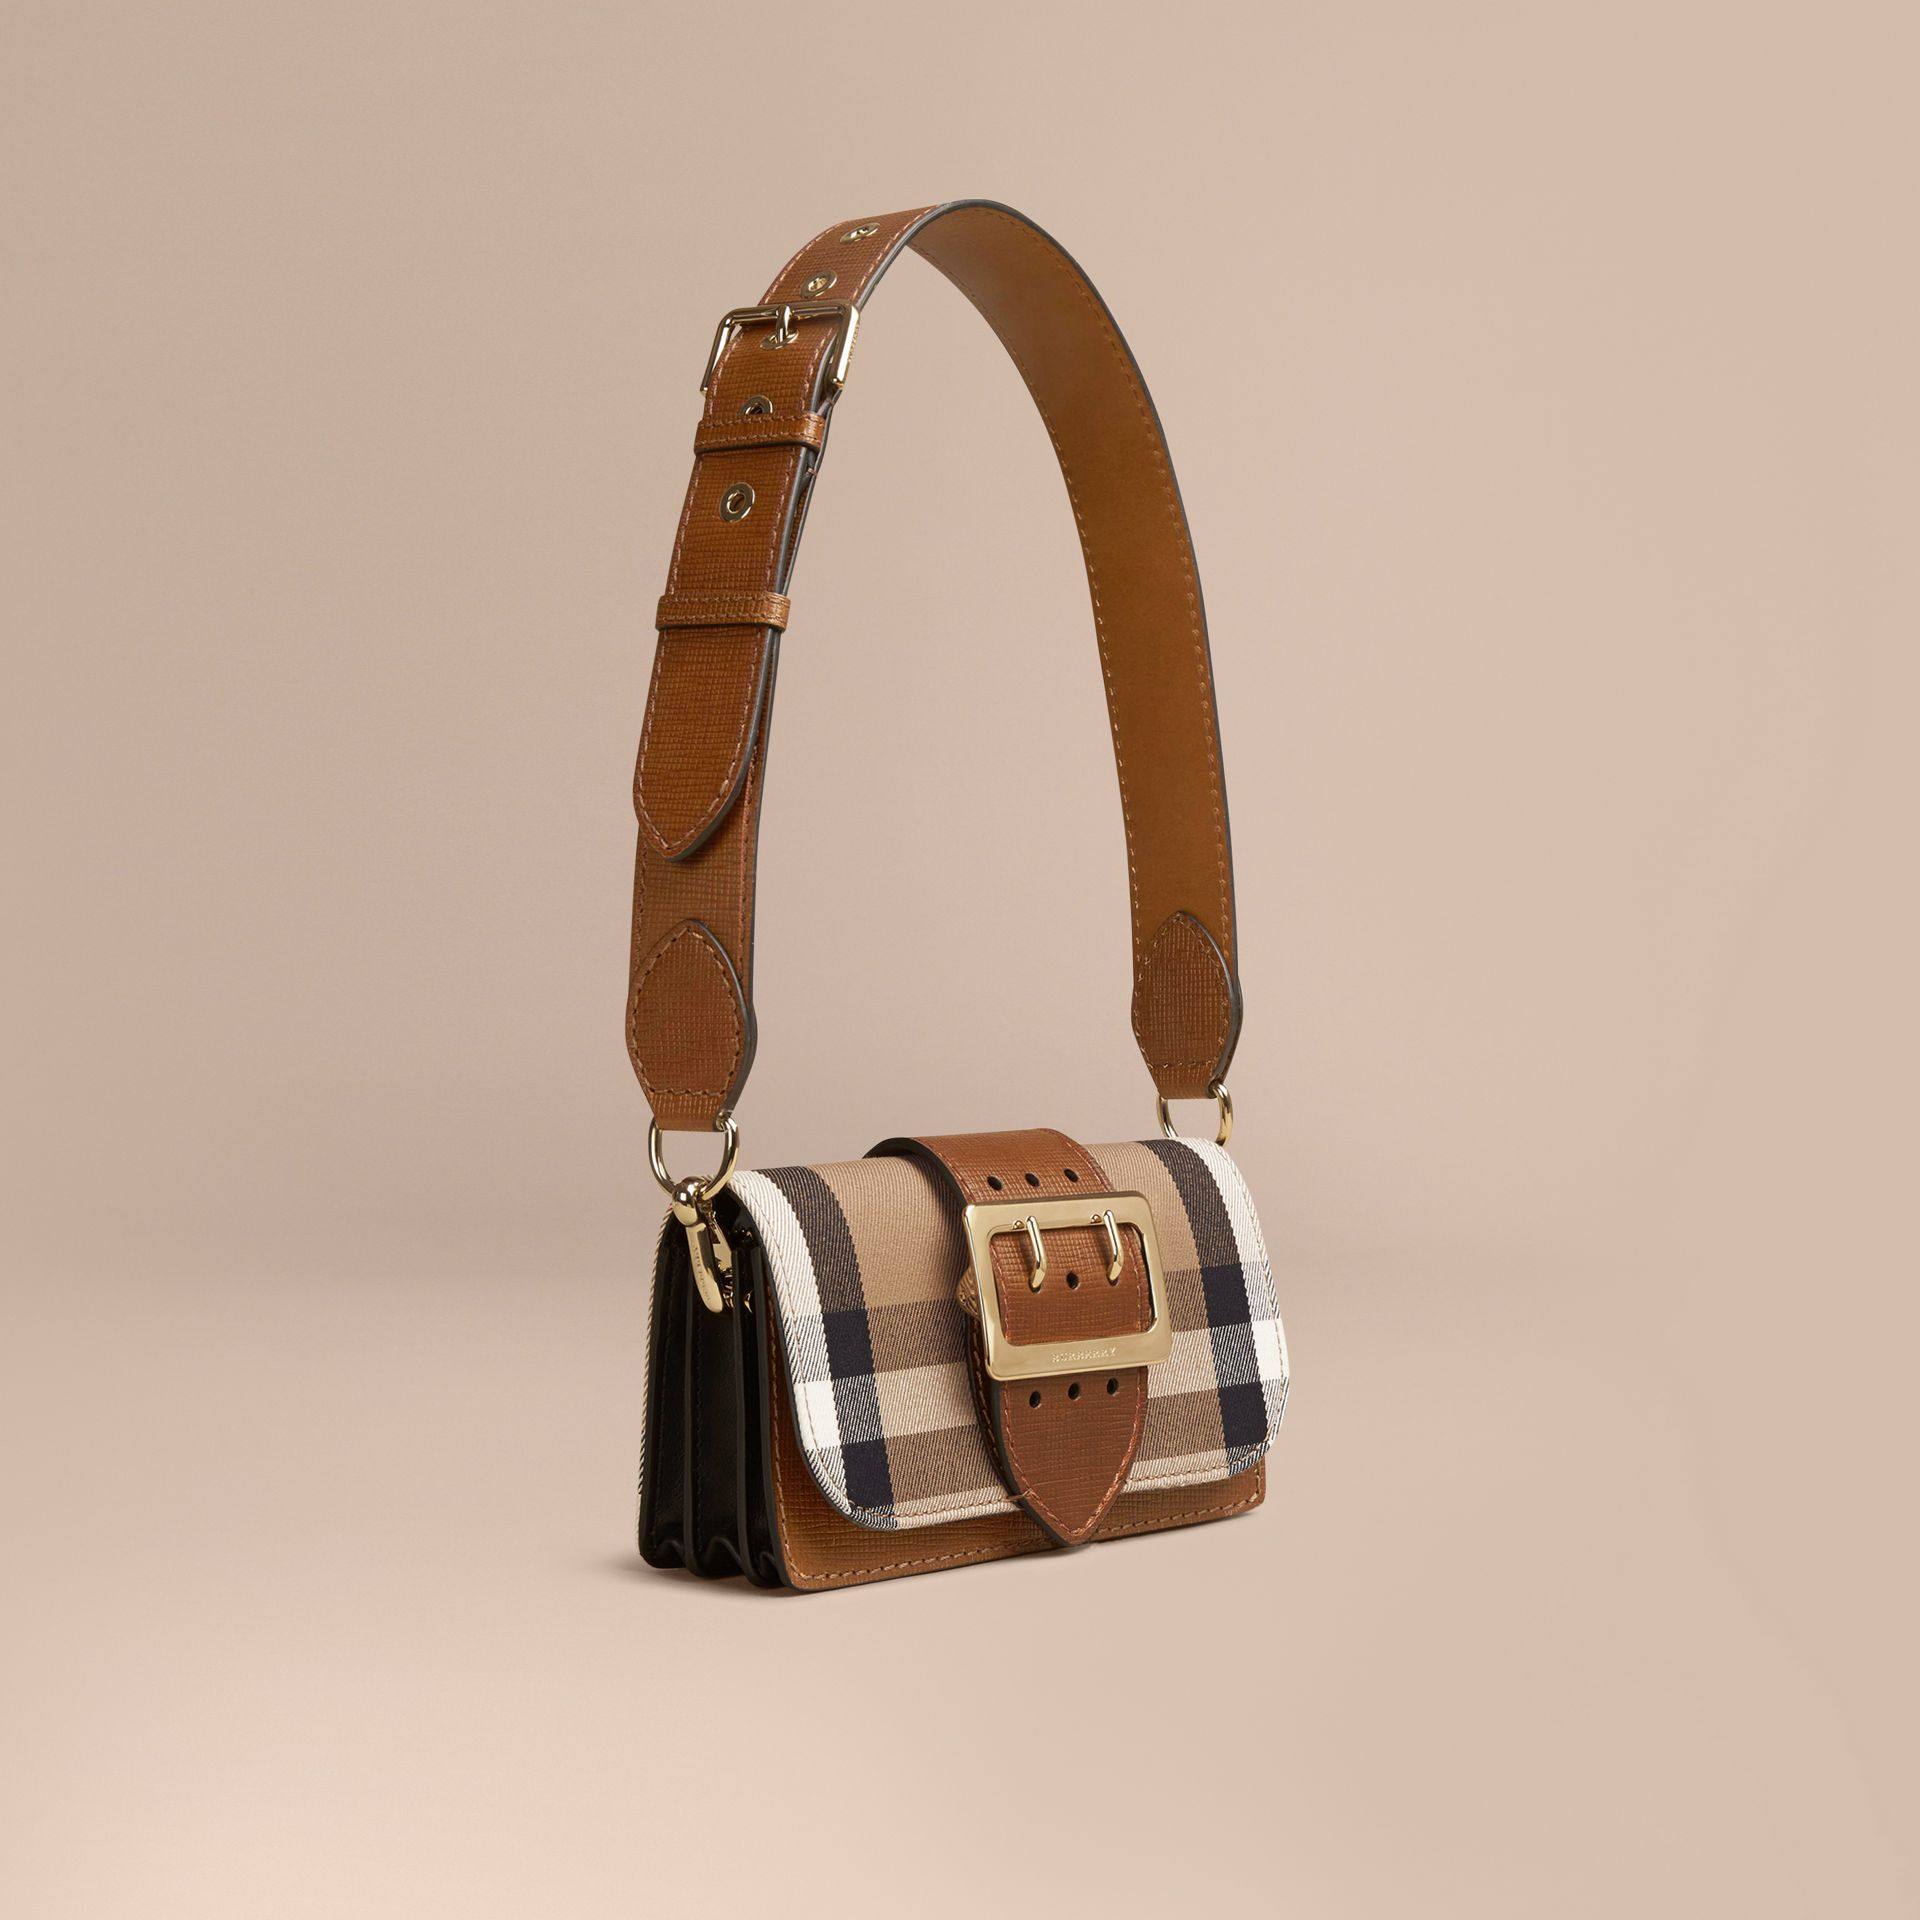 Tan The Small Buckle Bag in House Check and Leather Tan - gallery image 1